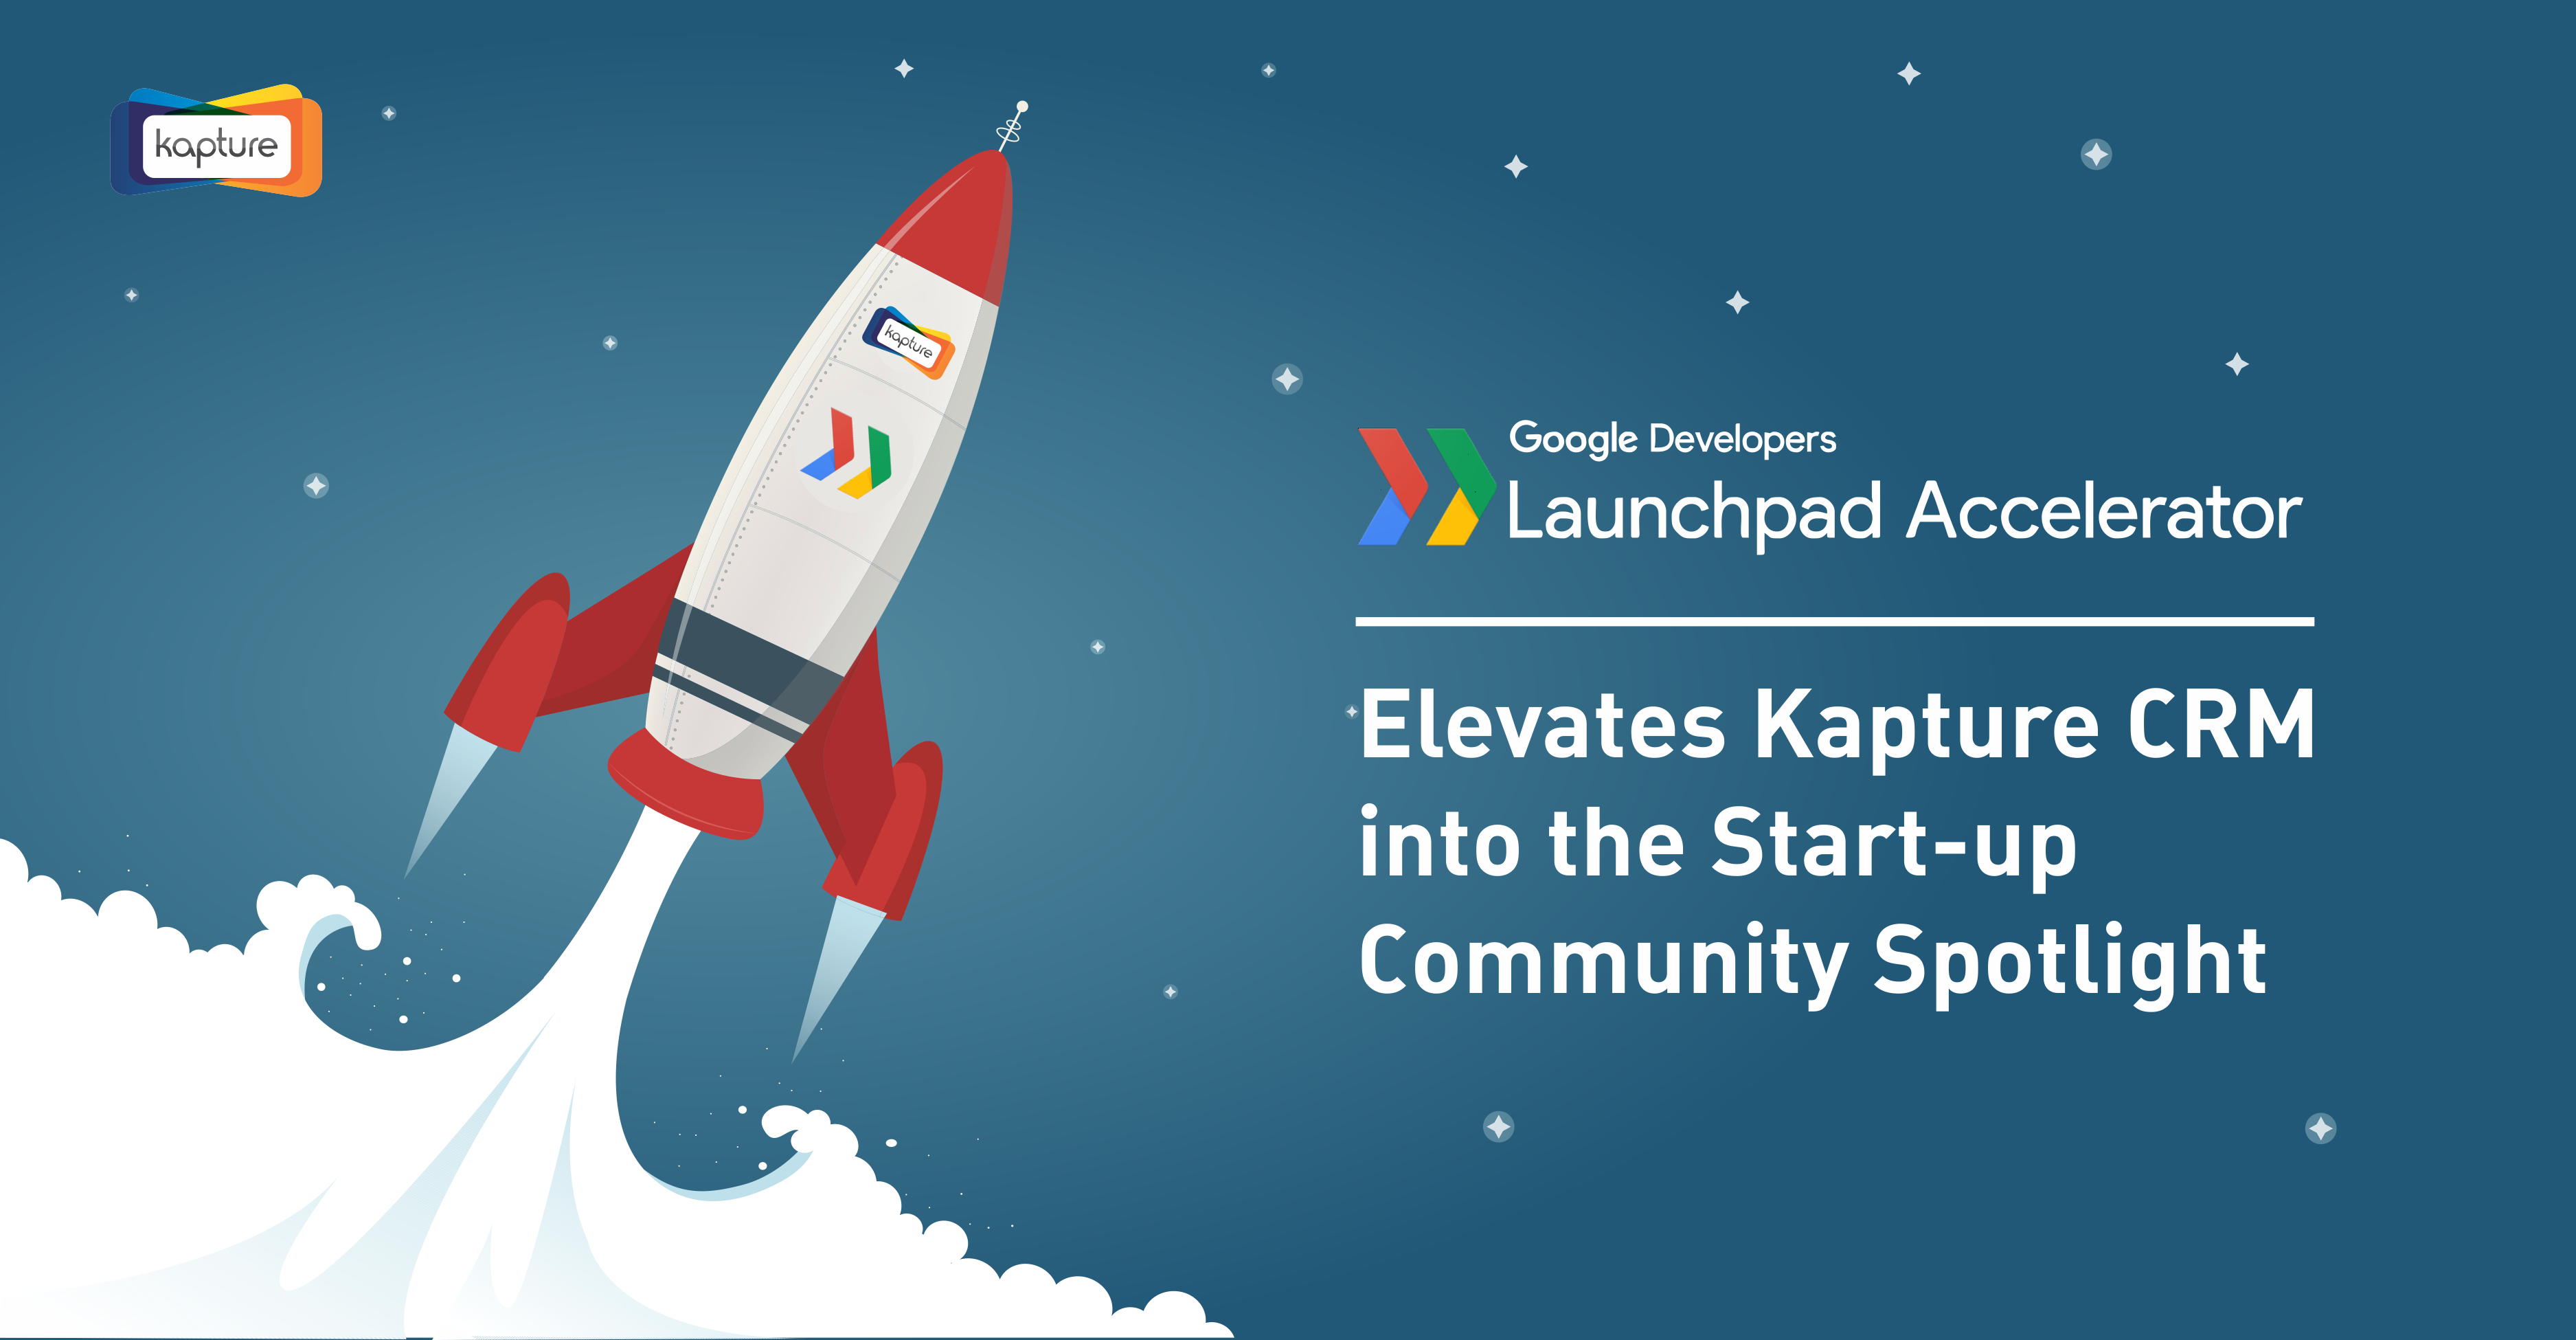 Google LaunchPad Accelerator programme Elevates Kapture CRM into the Start-up Community Spotlight